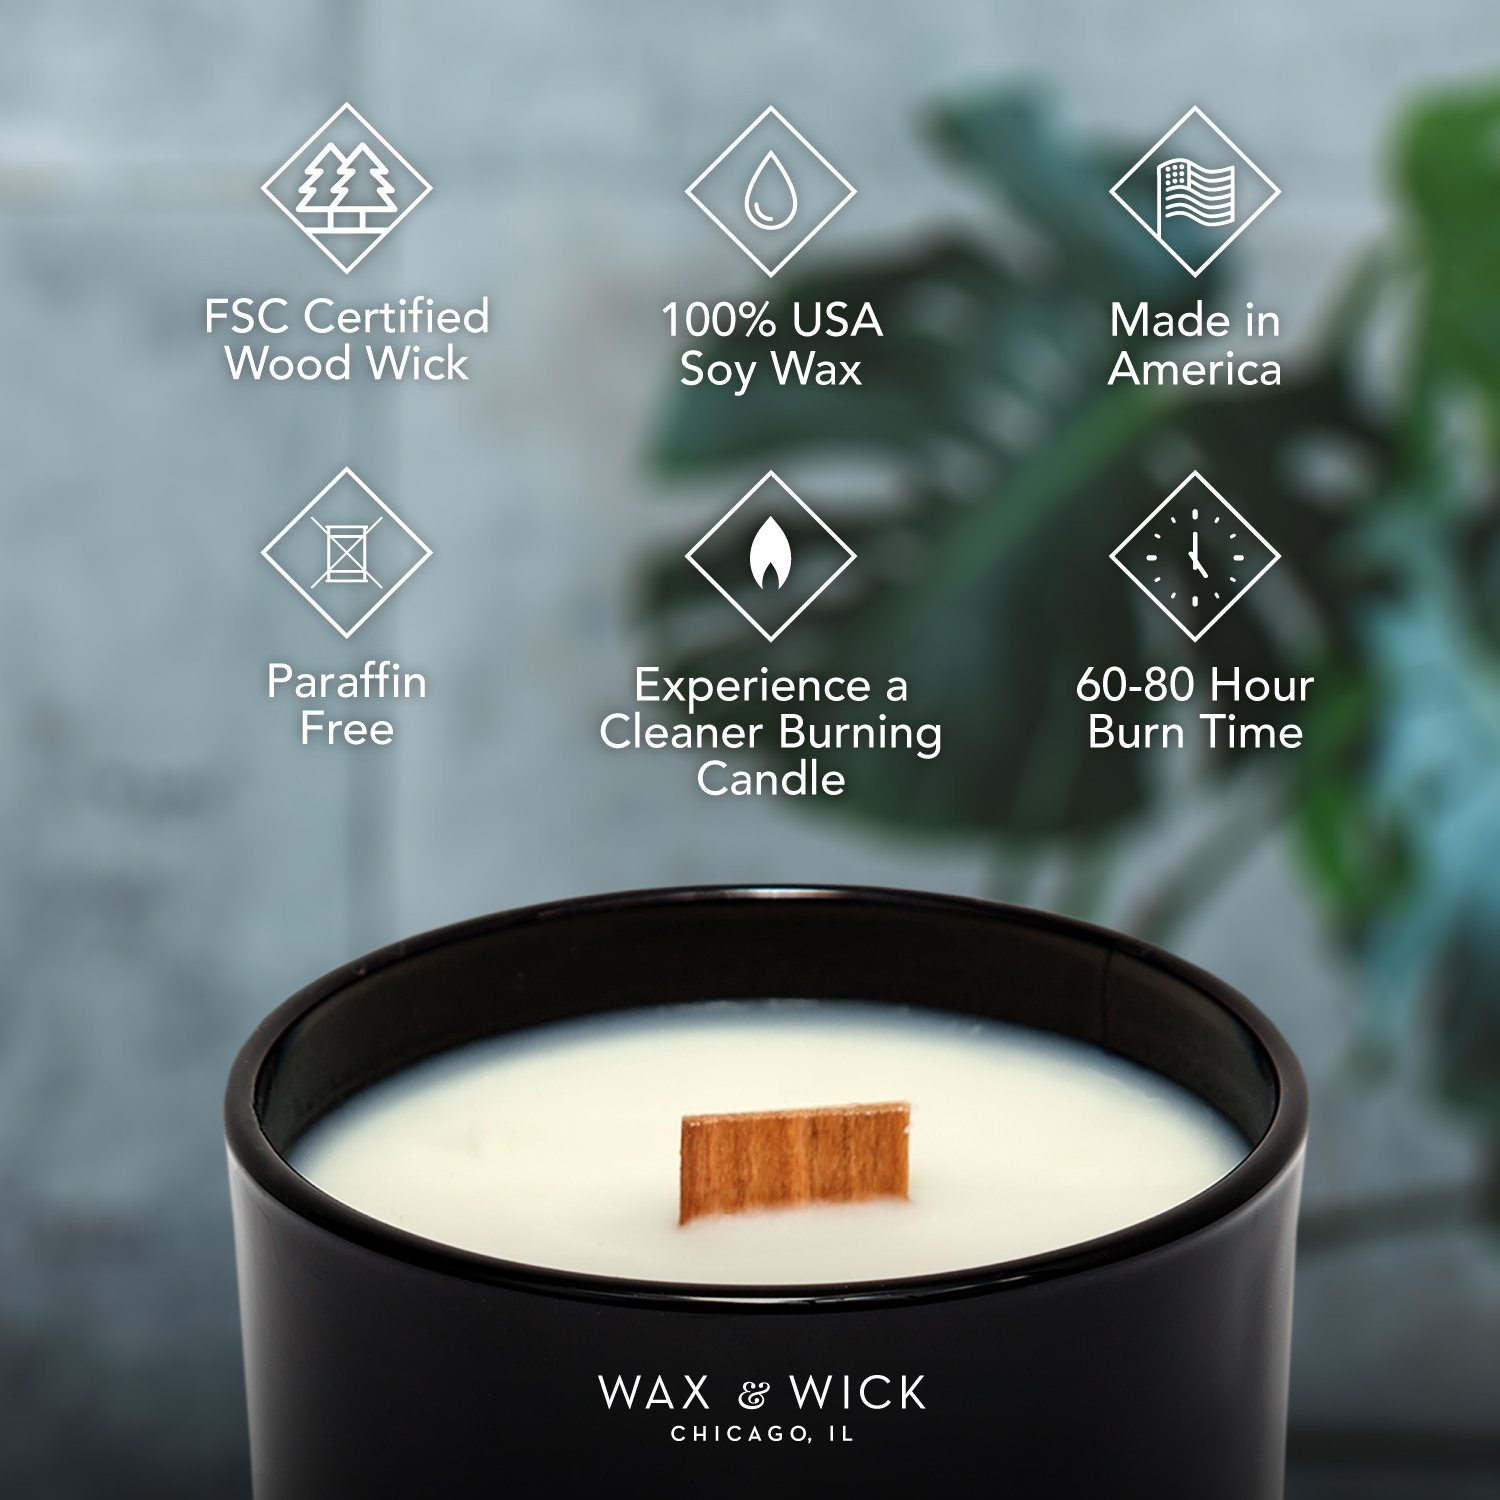 Scented Soy Candle: 100% Pure Soy Wax with Wood Double Wick | Burns Cleanly up to 60 Hrs | Mulled Cider Scent - Notes of Apple, Nutmeg, Vanilla, Caramel. | 12 oz Black Jar by Wax and Wick by Wax & Wick (Image #8)